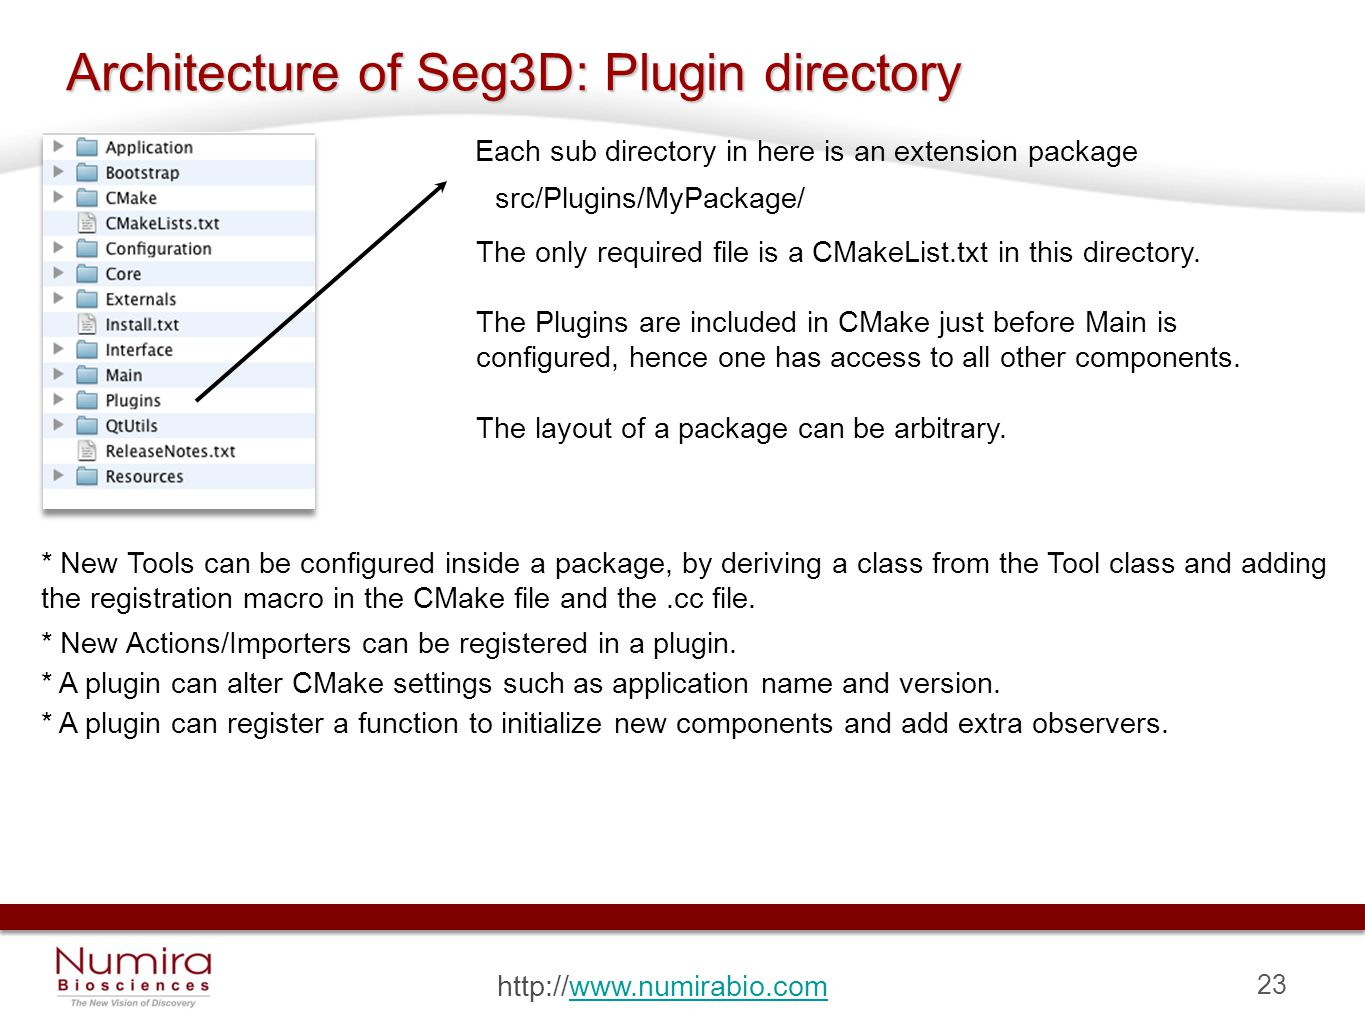 23 http://www.numirabio.comwww.numirabio.com Architecture of Seg3D: Plugin directory Each sub directory in here is an extension package src/Plugins/MyPackage/ The only required file is a CMakeList.txt in this directory.